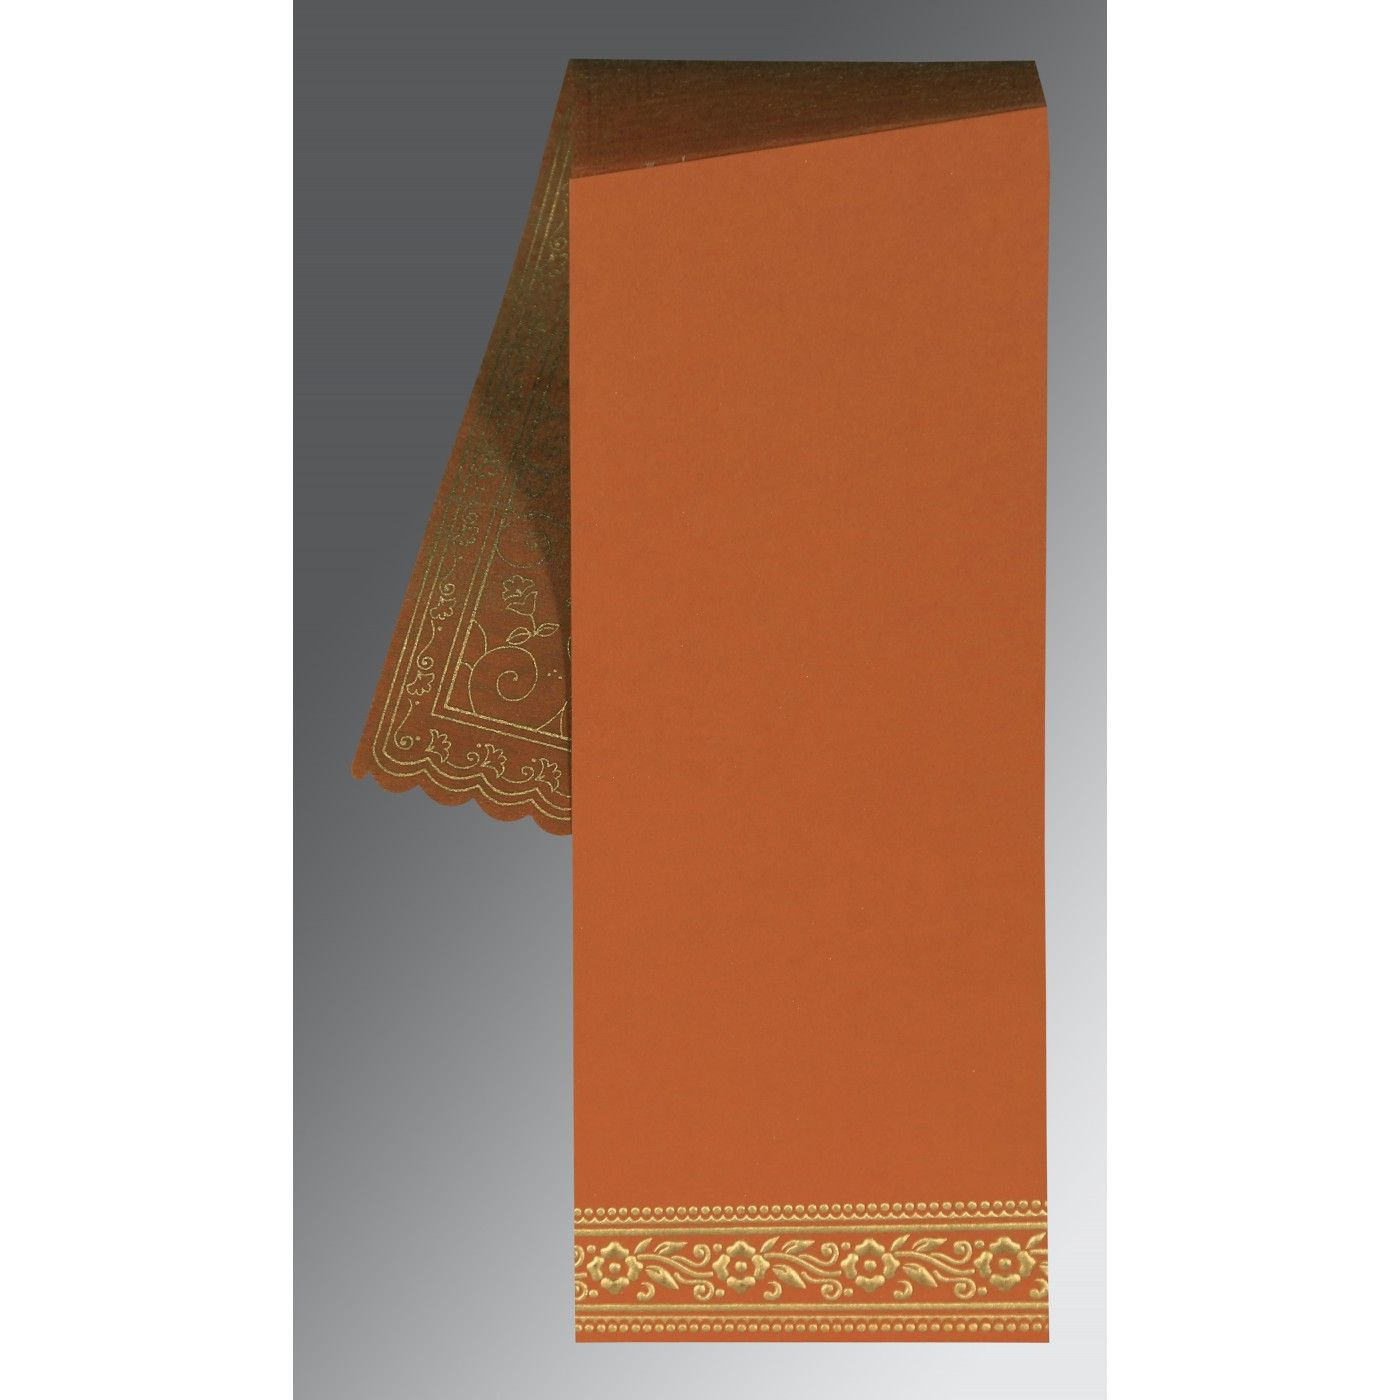 BURNT ORANGE WOOLY SCREEN PRINTED WEDDING INVITATION : CIN-8220C - IndianWeddingCards